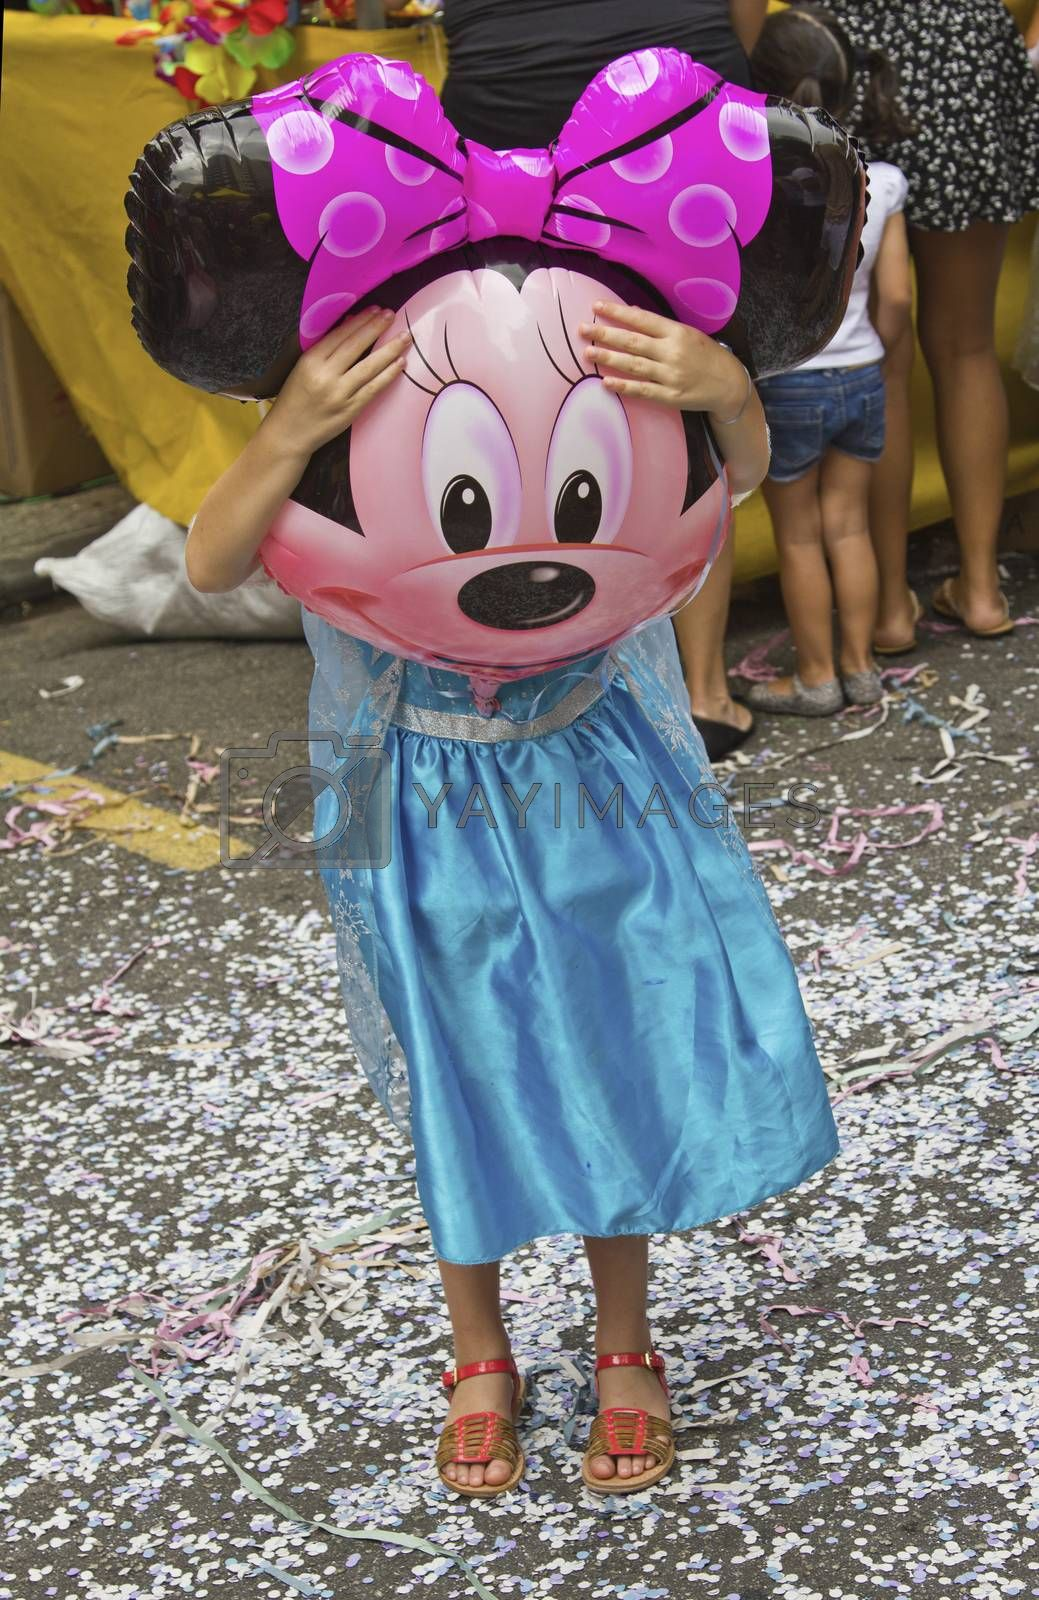 SAO PAULO, BRAZIL - JANUARY 31, 2015: An unidentified girl dressed like a princess with a Minie ballon in front her face participate in the annual Brazilian street carnival dancing and singing samba.